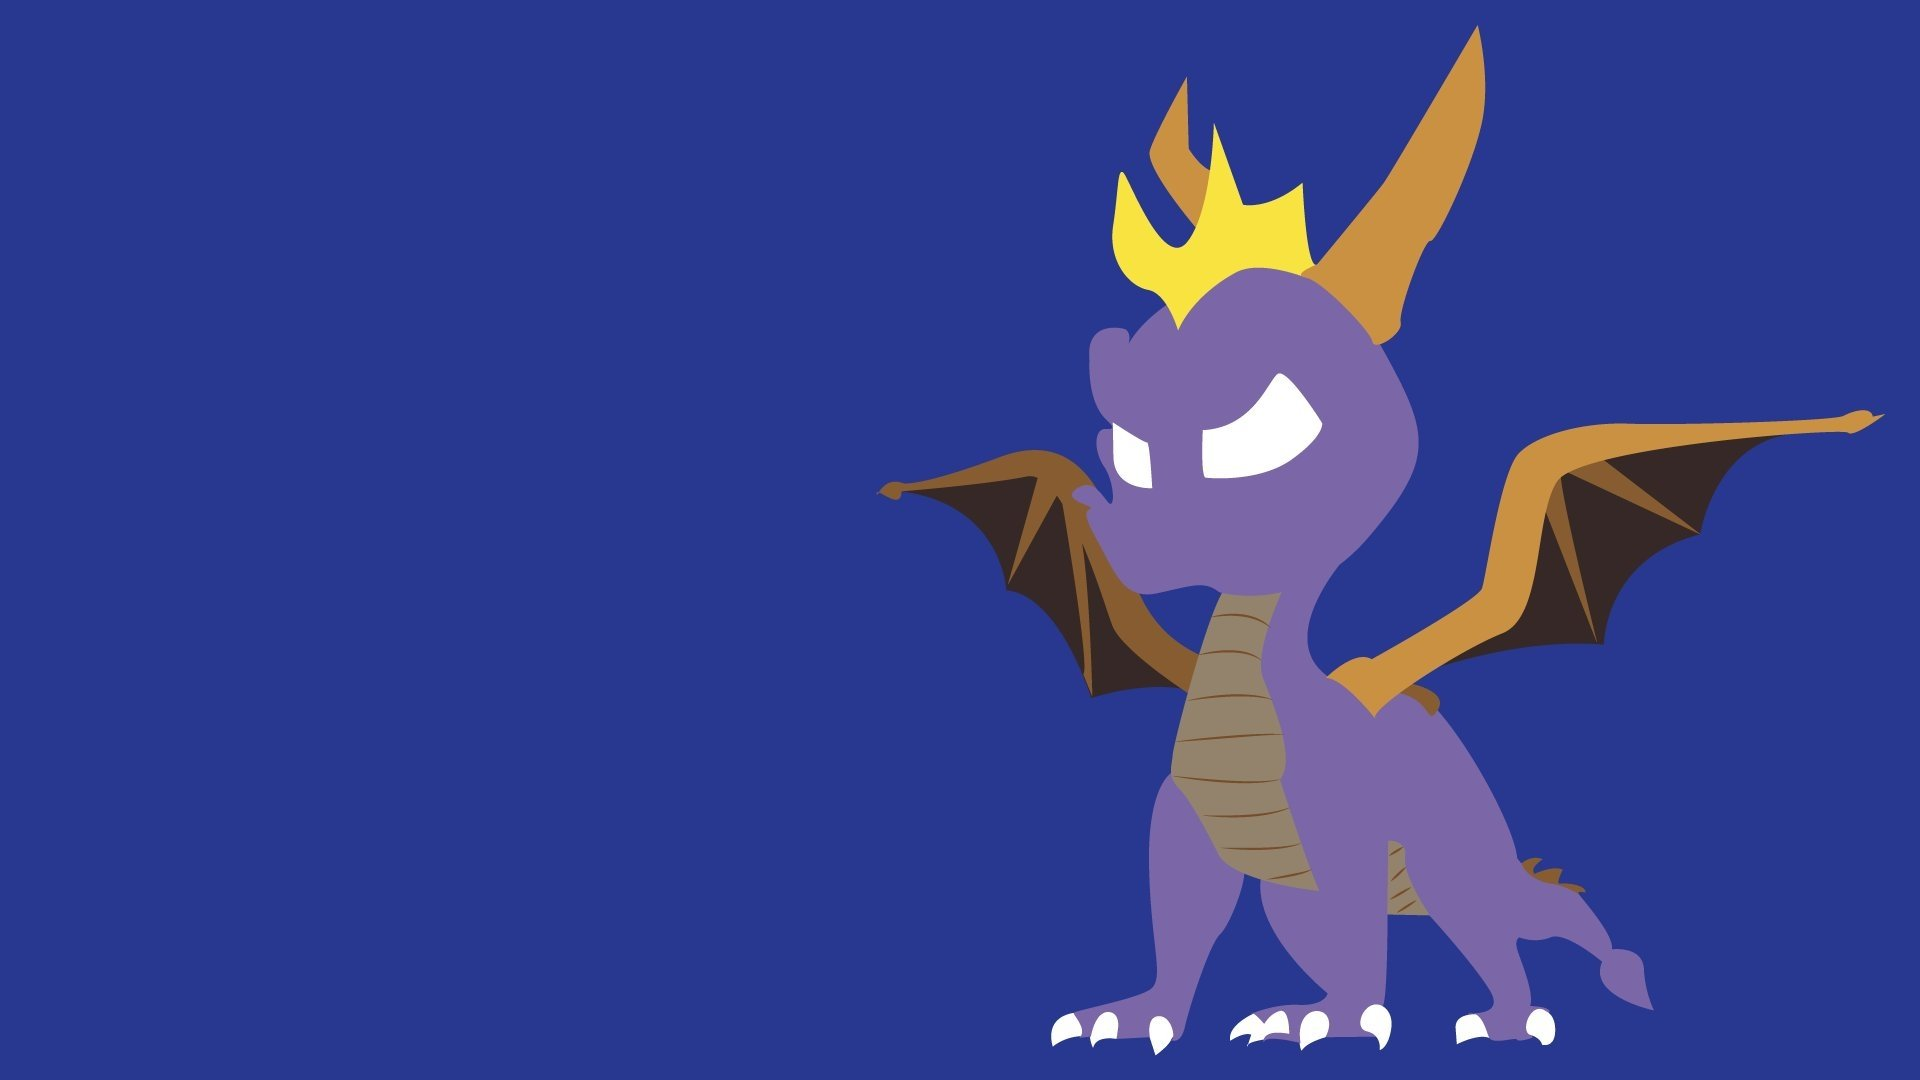 spyro full hd wallpaper and background image